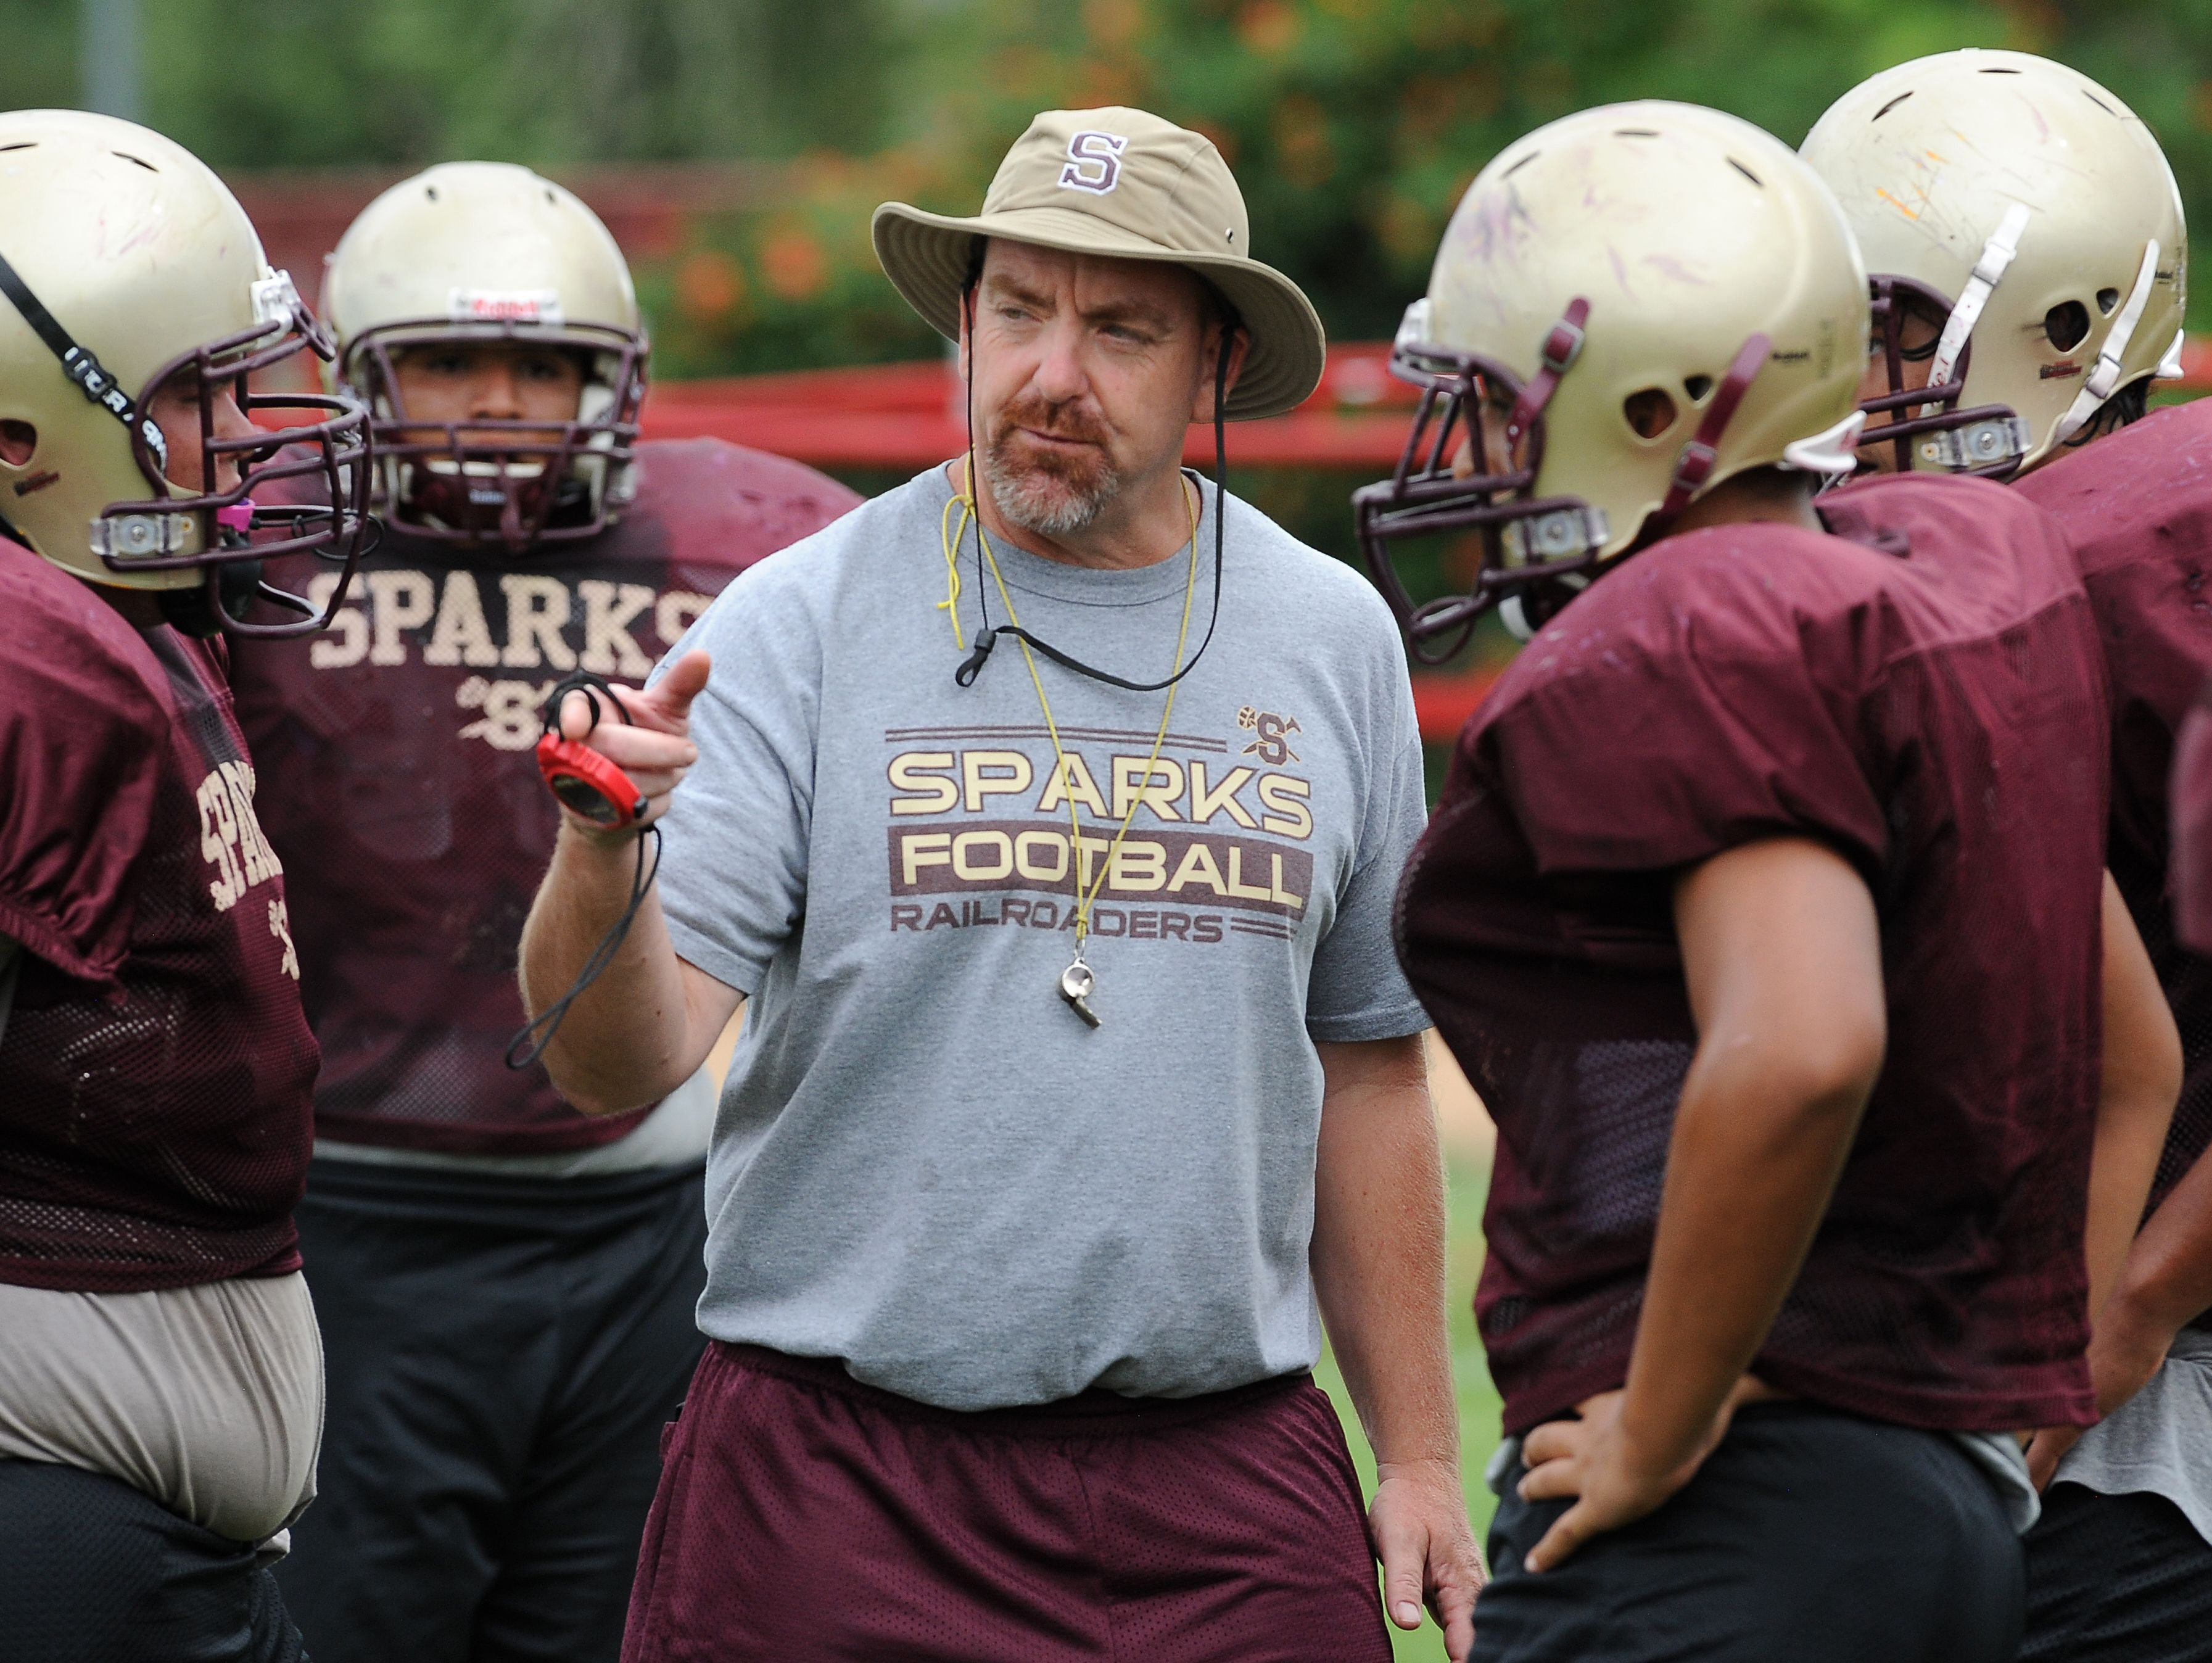 Sparks football coach Rob Kittrell gives instructions during practice at Sparks High School on Aug. 21, 2013.